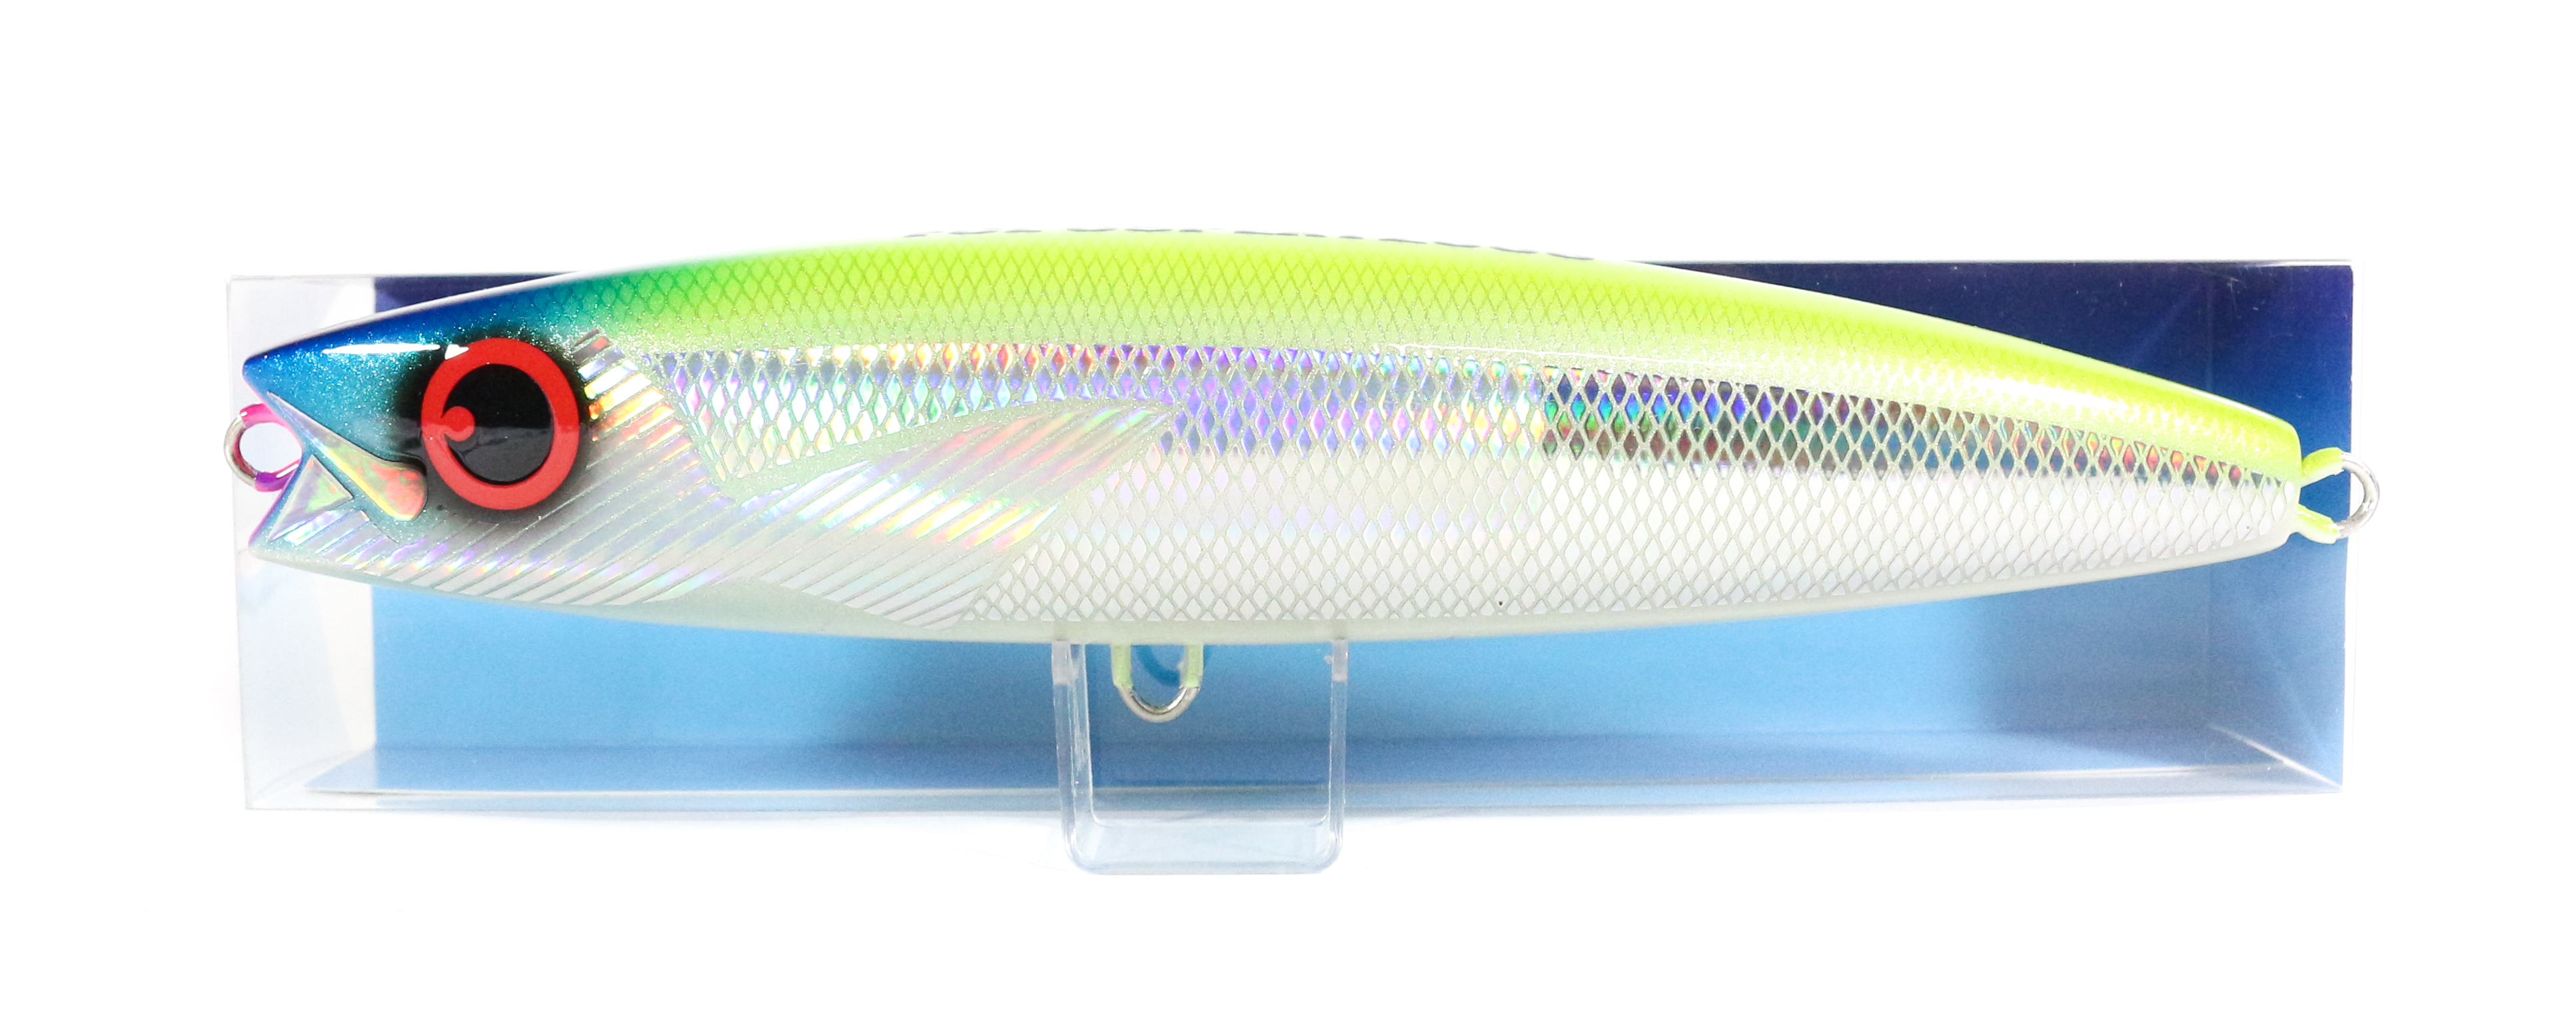 Sale FCL Labo Stick Bait CSP EXT 230S Sinking Lure 215 grams BYp (9301)